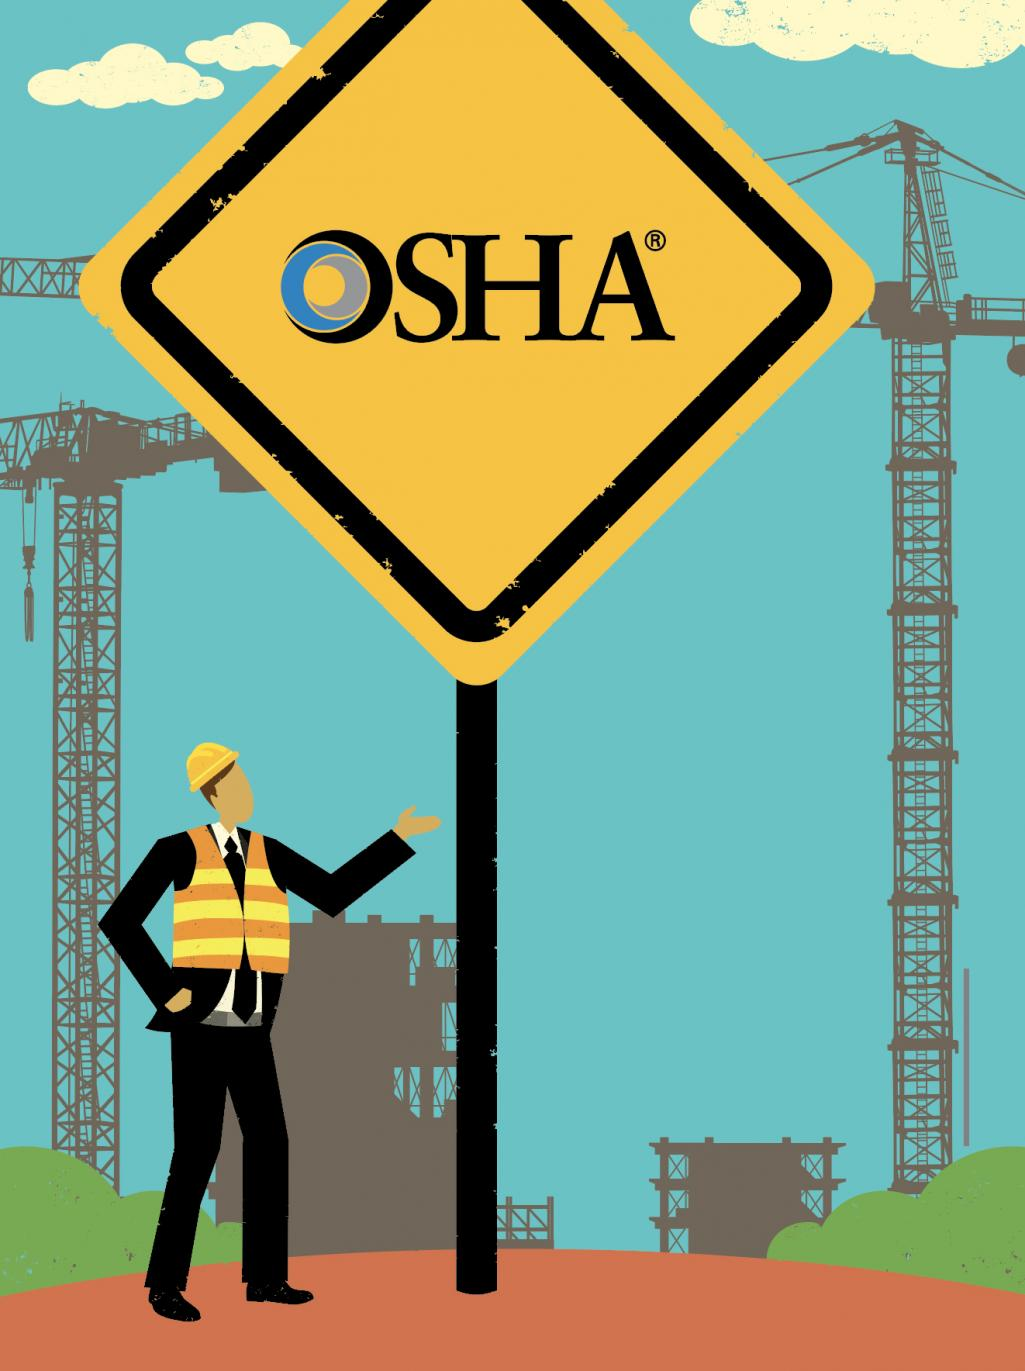 Stupendous Oshas History The Occupational Safety And Health Administration Wiring 101 Capemaxxcnl